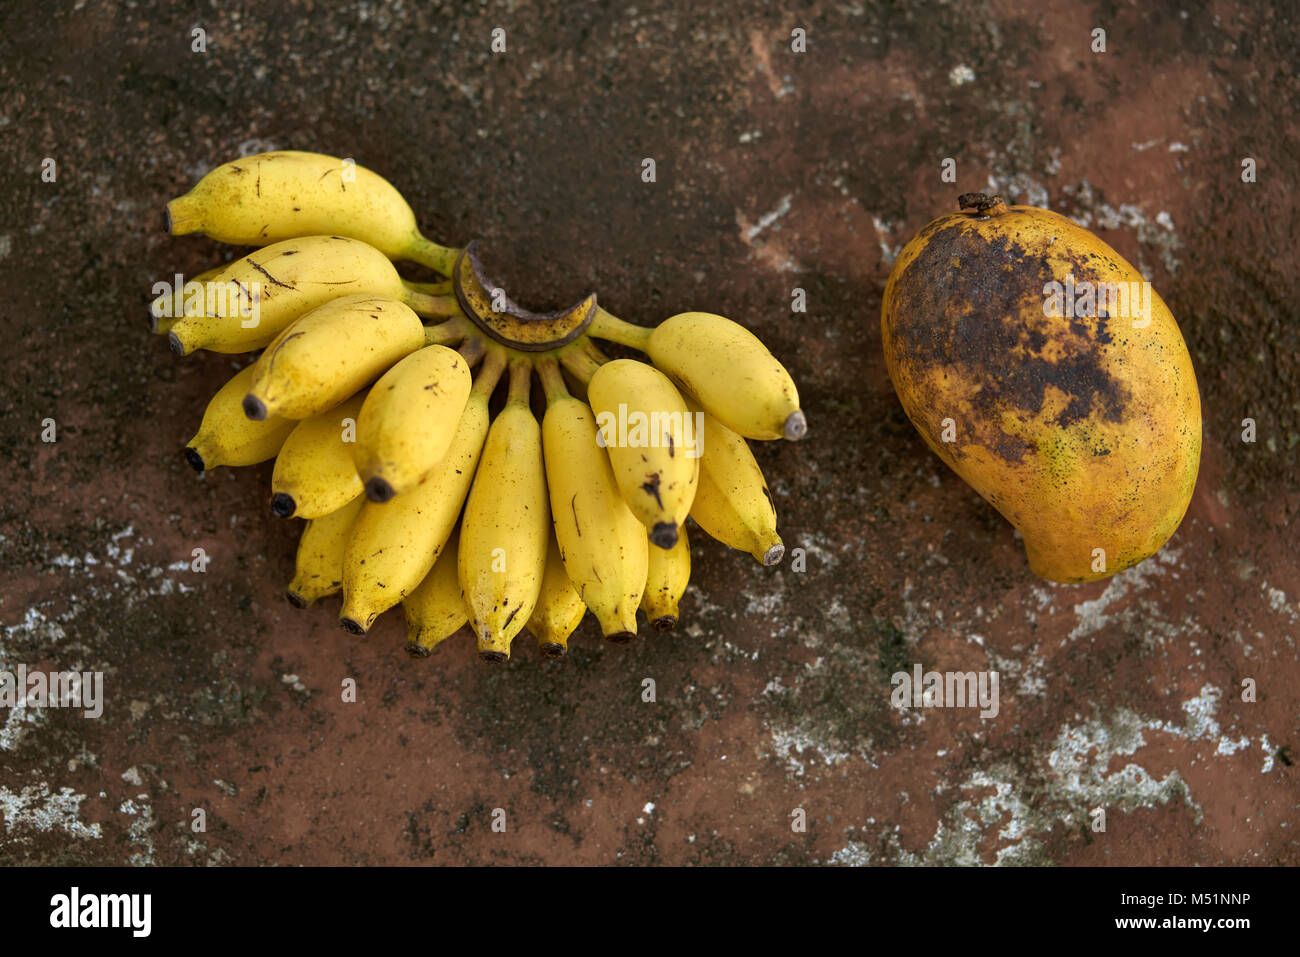 Colorful bananas and papaya - Stock Image